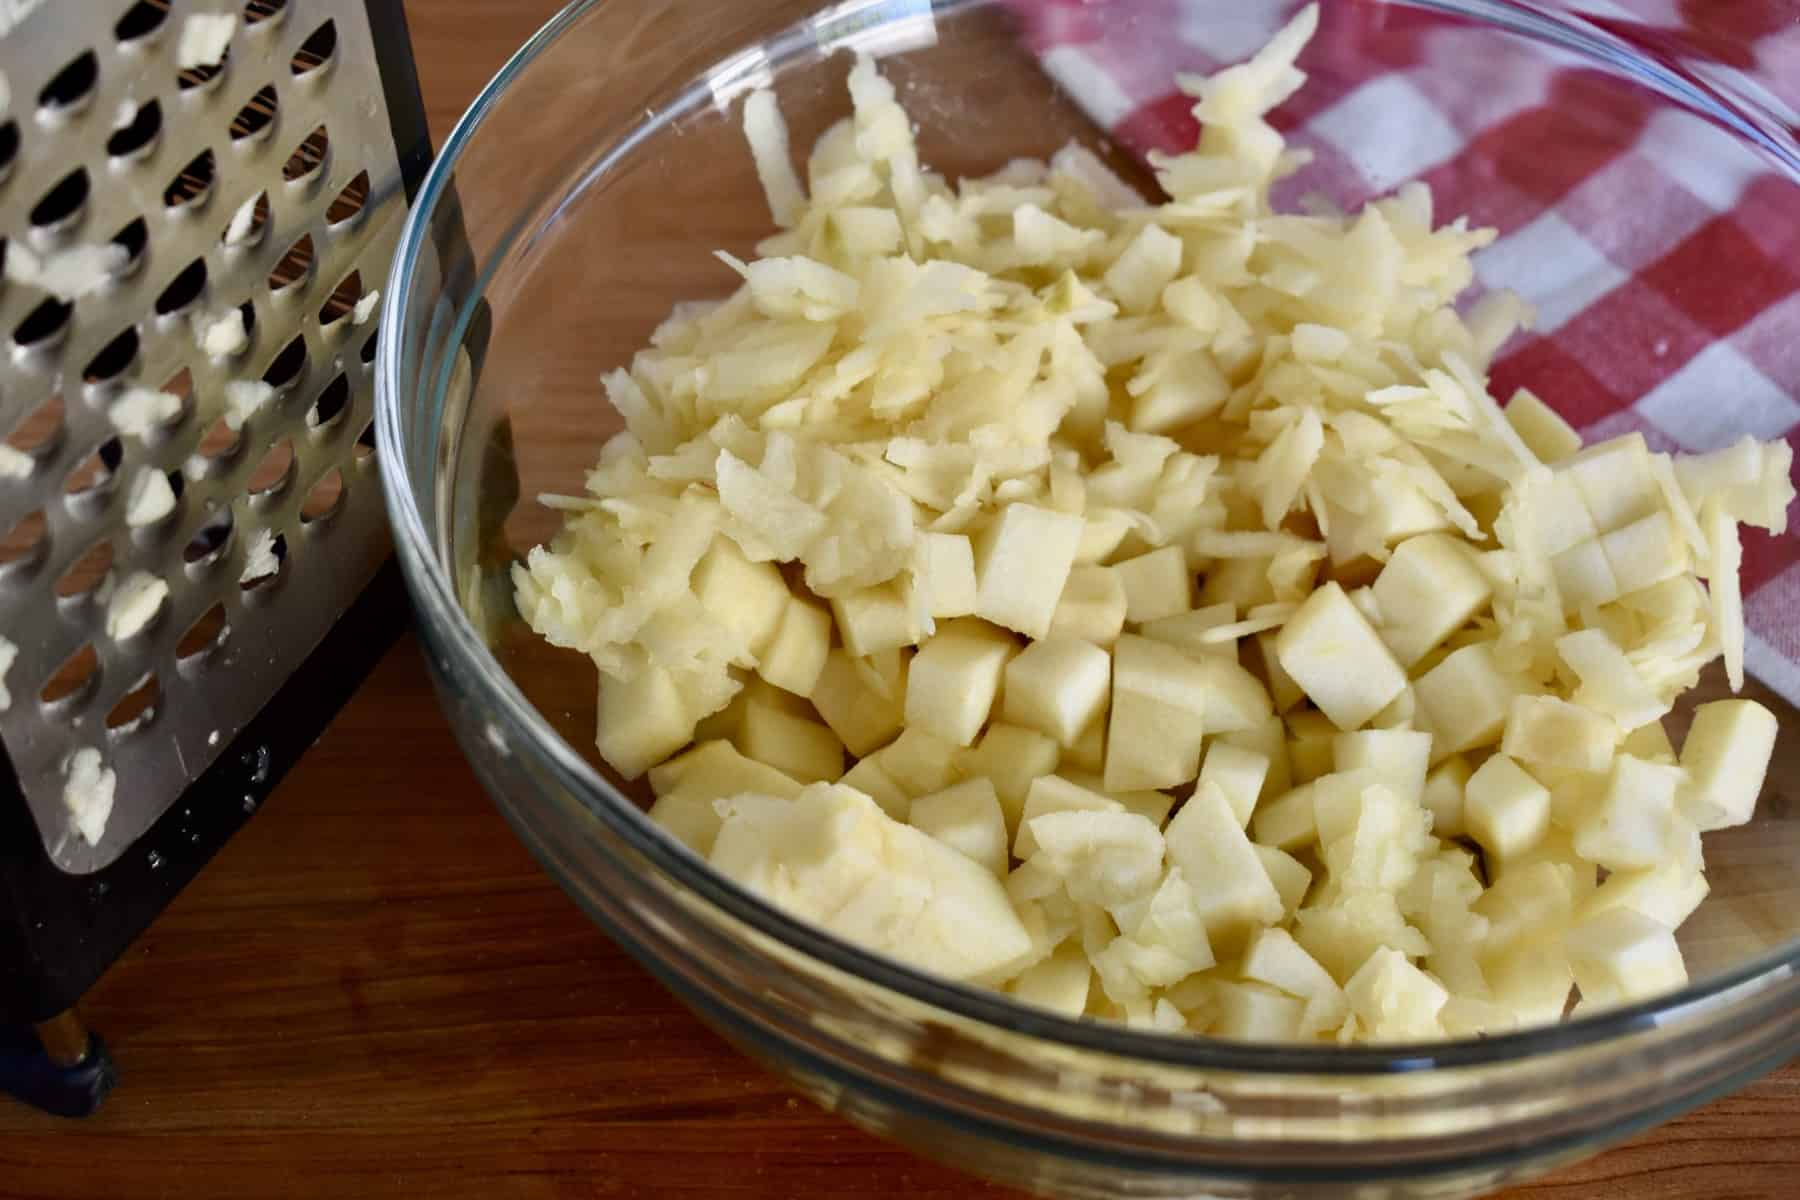 glass bowl with diced and shredded apple in it.